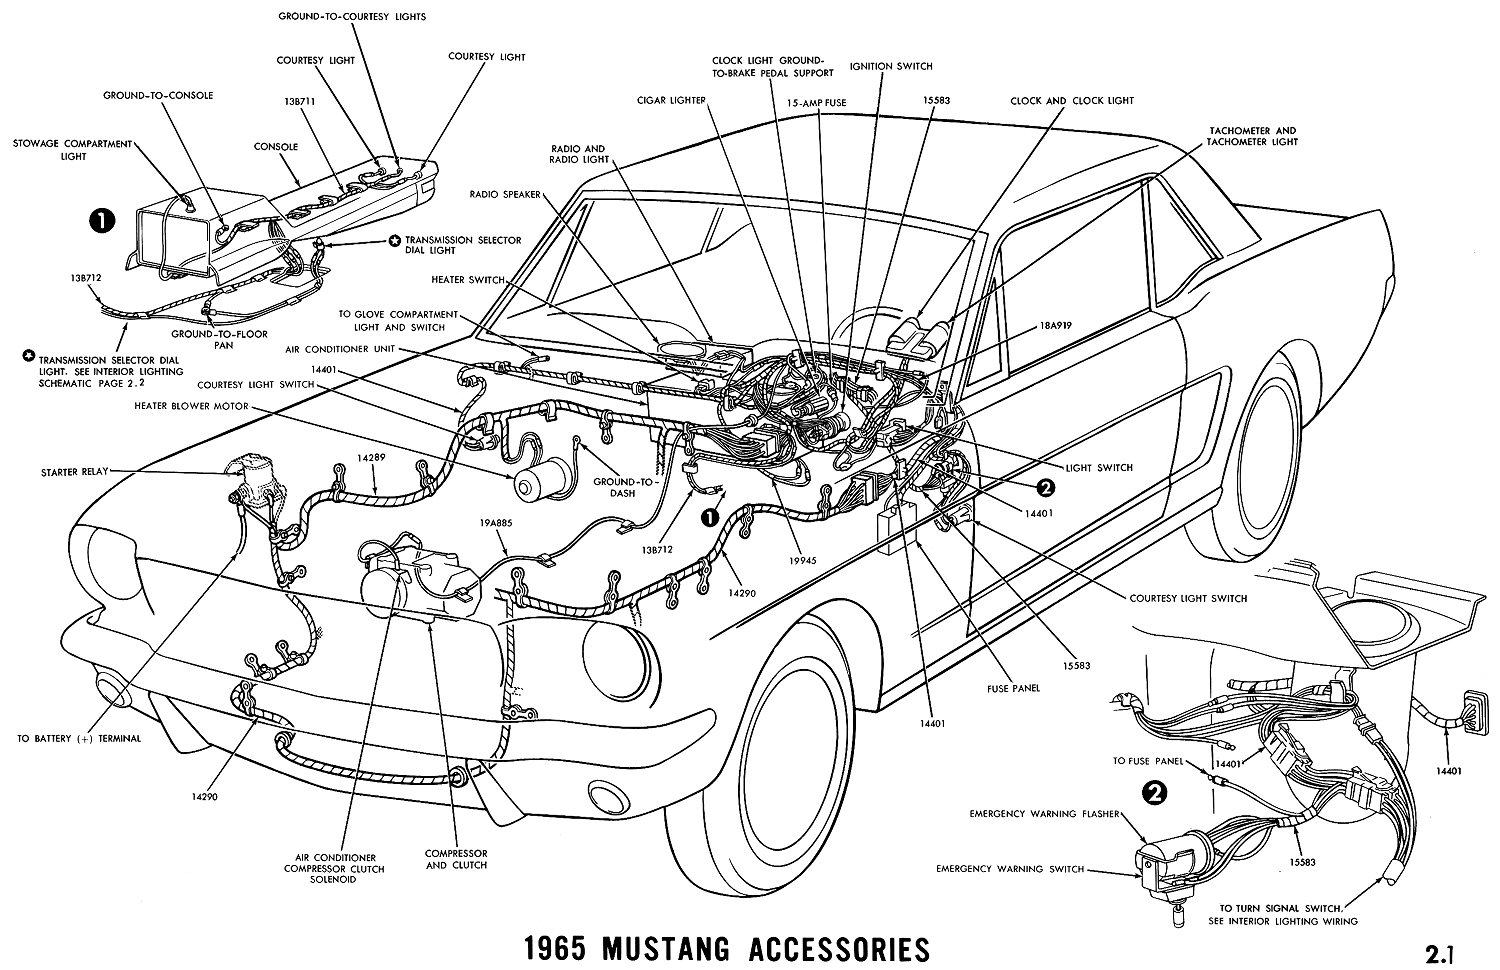 Engine Wiring Diagram 1965 Library Lemans Mustang Accessories Pictorial Or Schematic